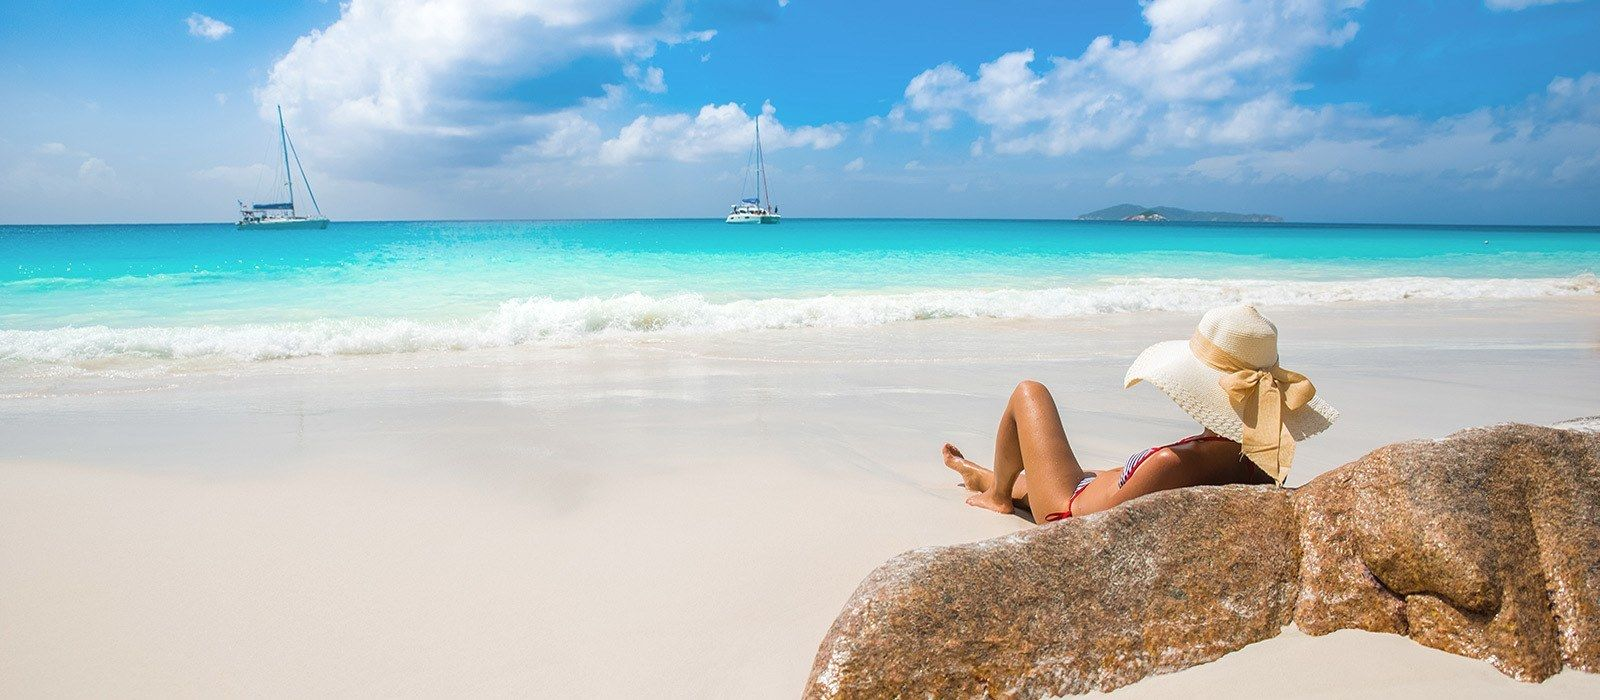 Exclusive Travel Tips for Your Destination Praslin Island in Seychelles